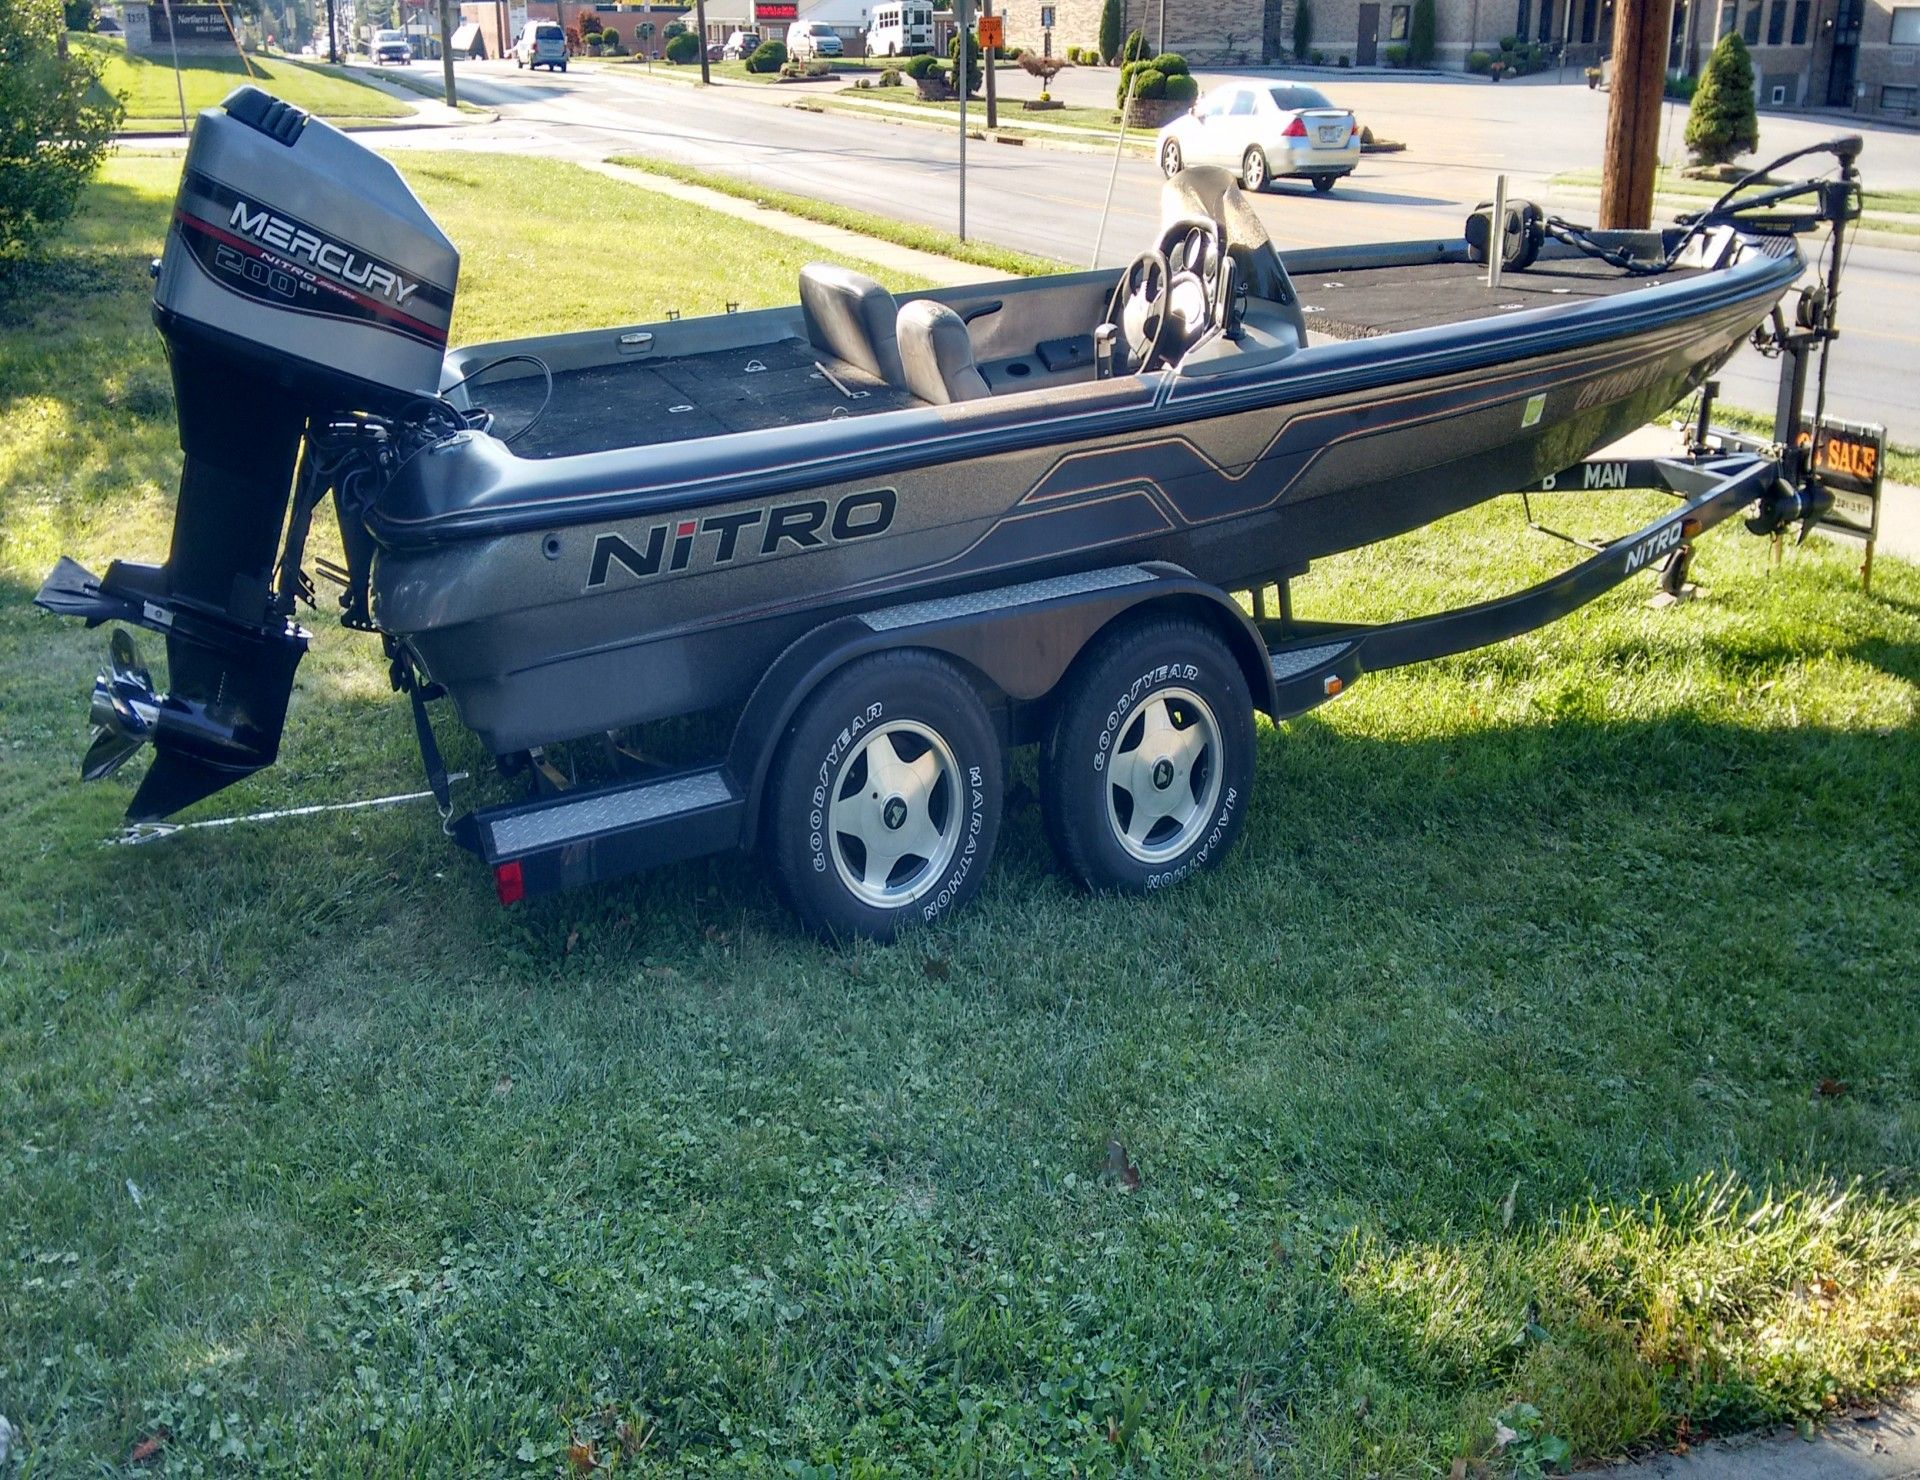 small resolution of  200 hp mercury efi outboard 2 stroke automatic oil mix 1996 twin axle trailer with swing away tongue surge brakes engine recently serviced with